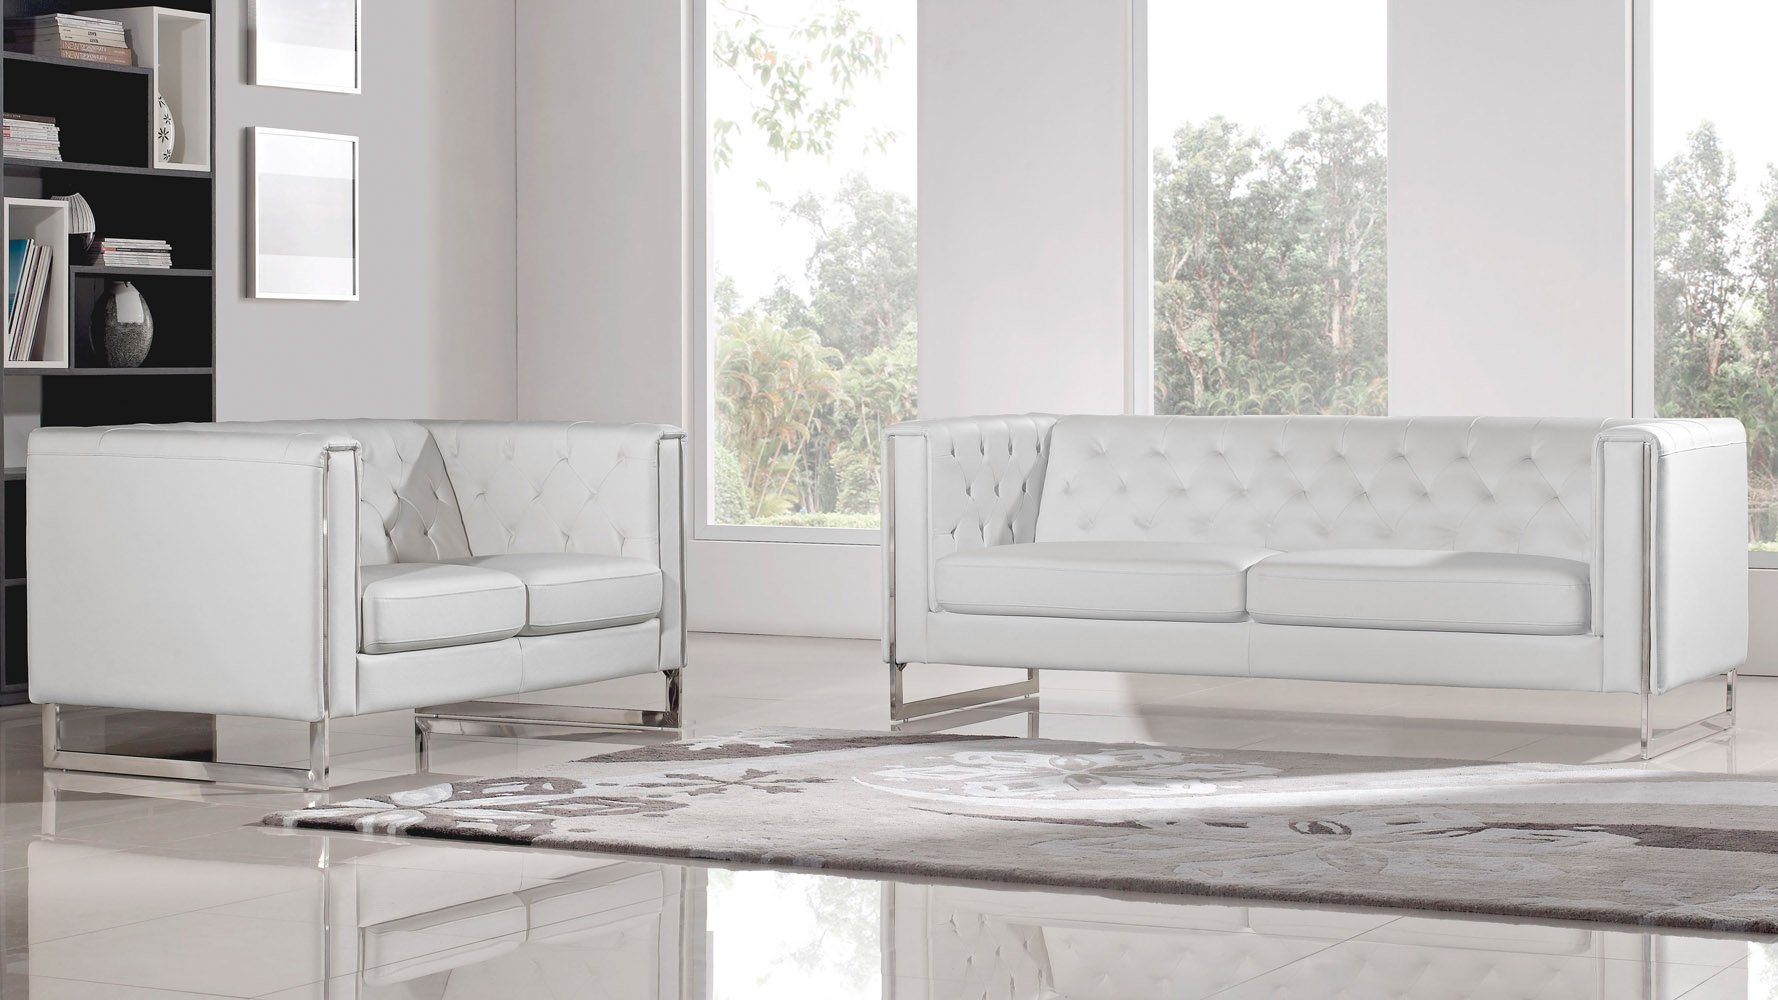 http://www.zurifurniture.com/common/images/products/large/modern-white-leatherette-2-piece-easton-sofa-set-with-stainless-steel-legs-1.jpg